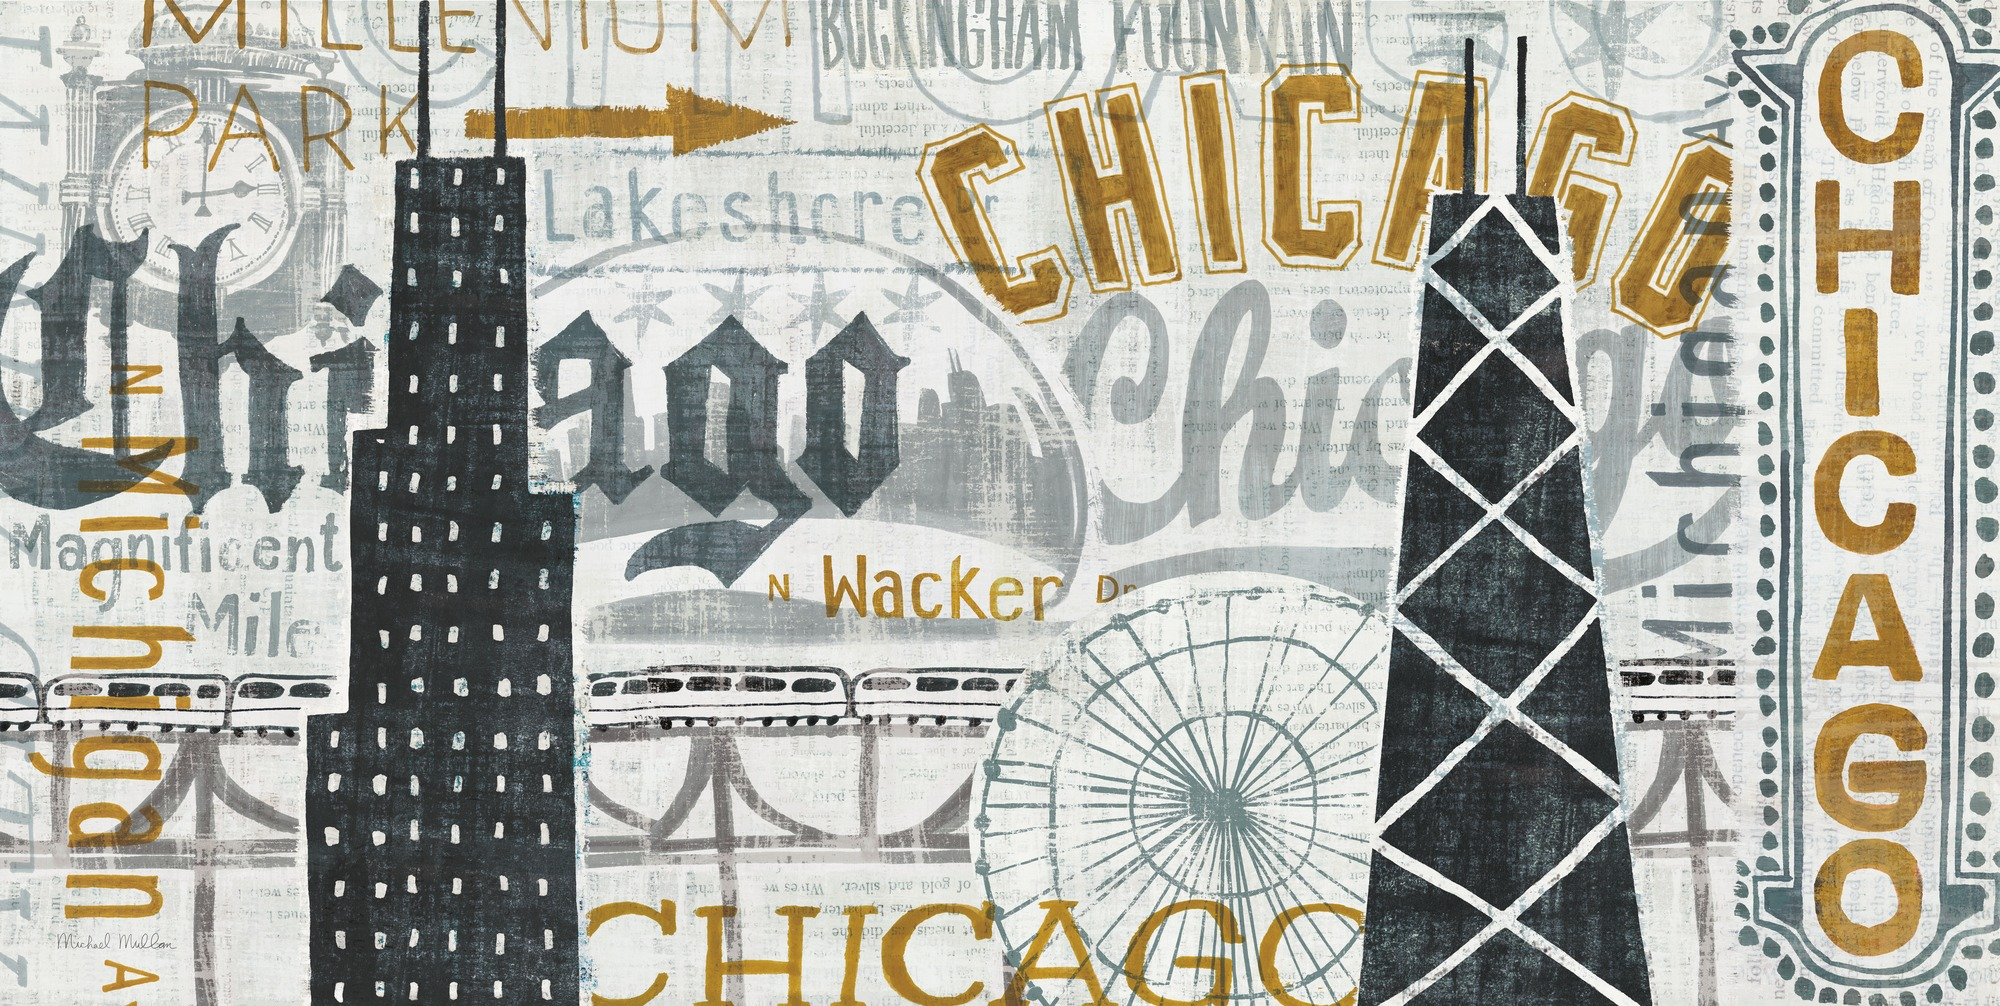 michael mullan wall murals michael mullan wallpapers wallsauce usa hey chicago vintage wallpaper mural